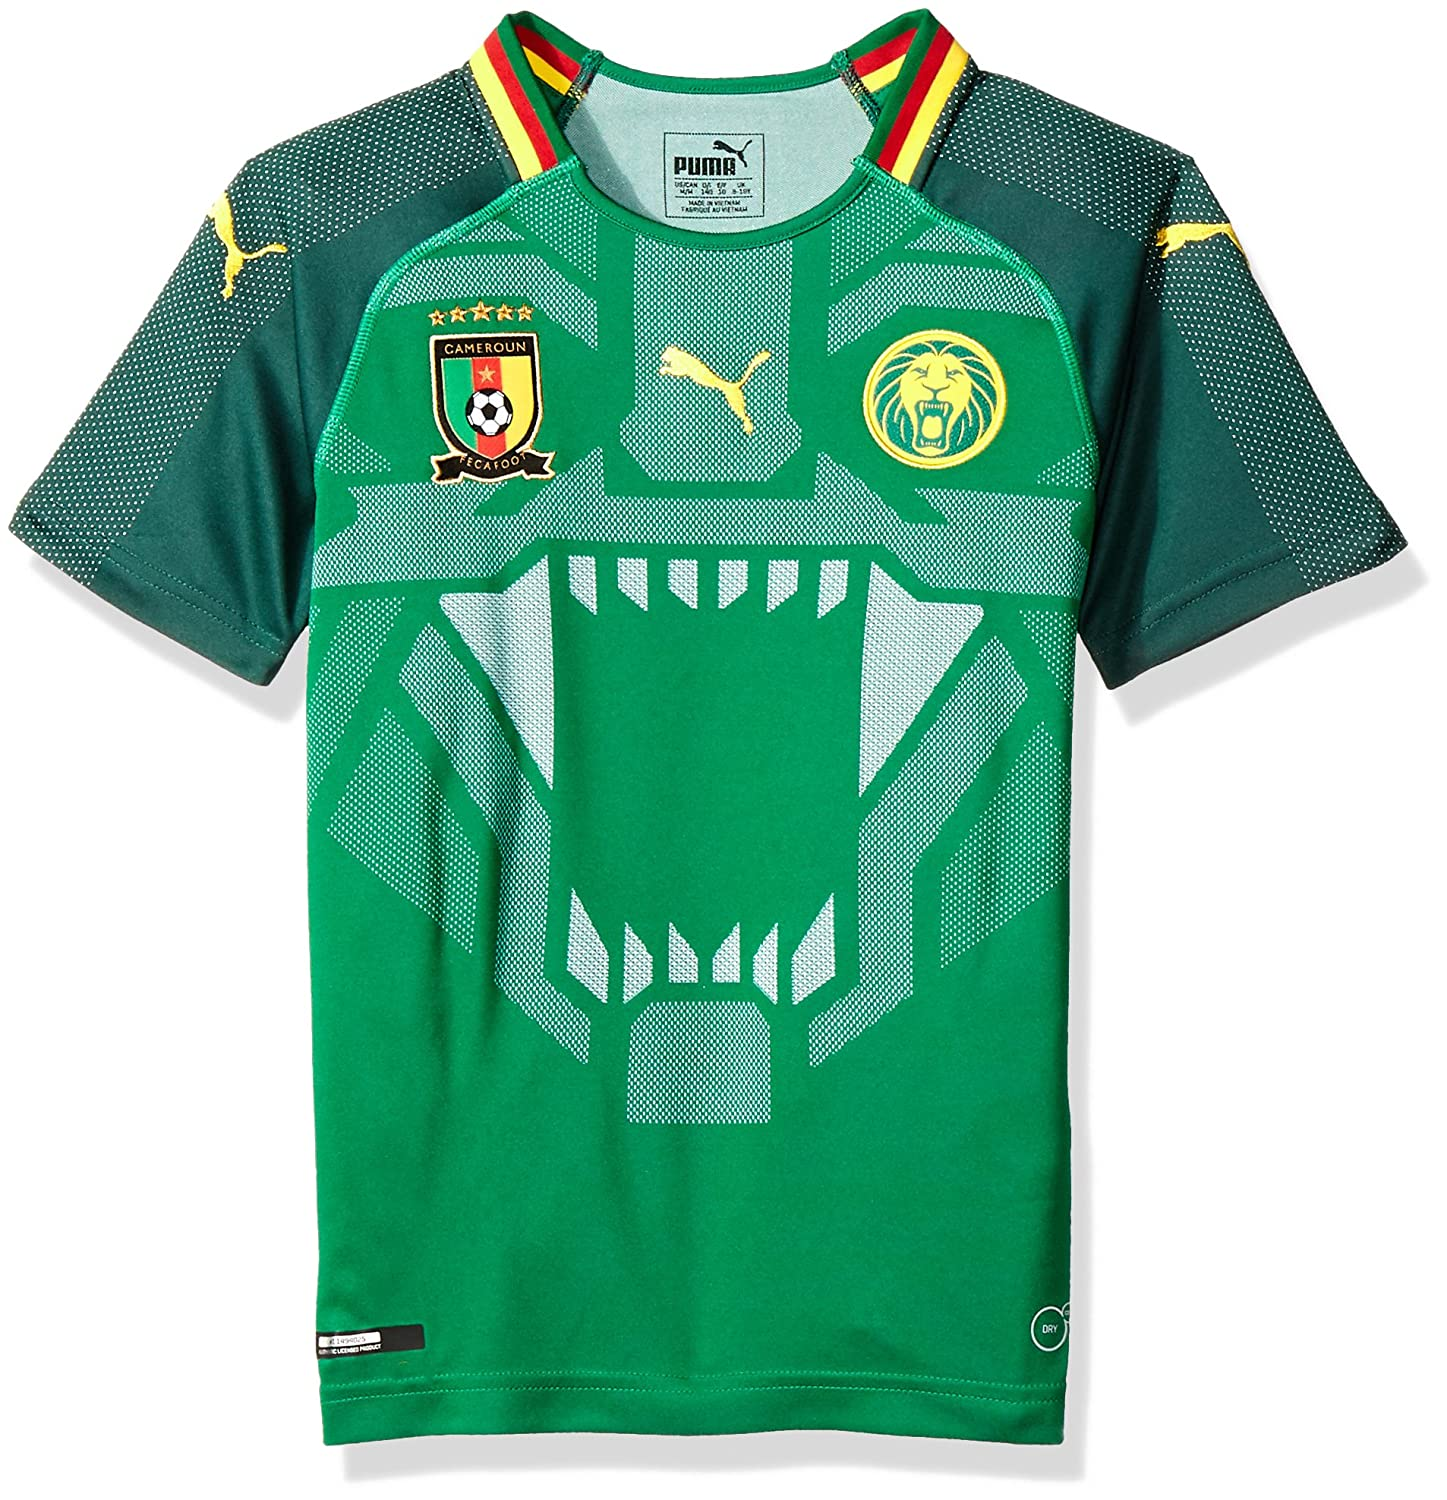 dba9a9c4f99 Amazon.com   PUMA 2018-2019 Cameroon Home Football Soccer T-Shirt Jersey  (Kids)   Sports   Outdoors